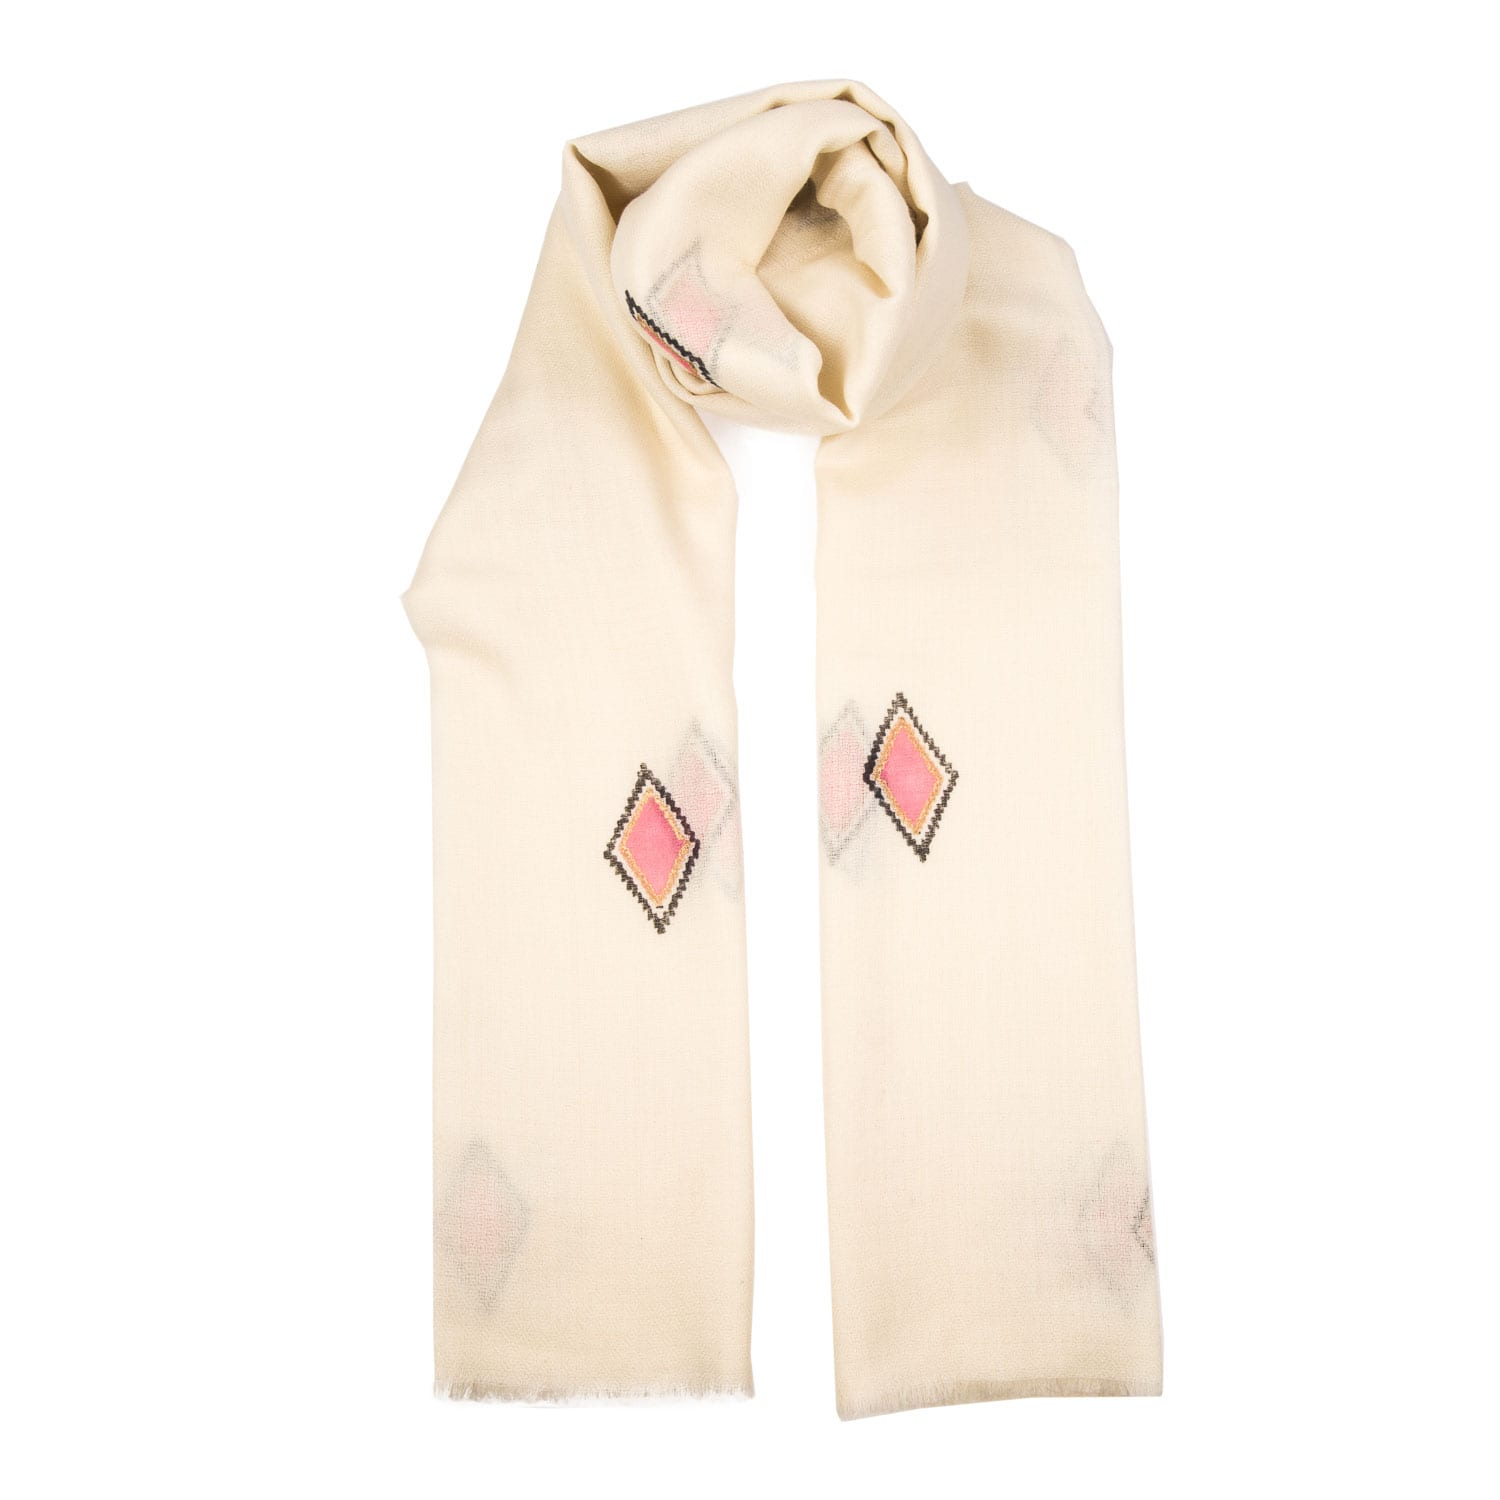 Hand block printed Beltane design is printed in a pale blue, blush pink and gold design on a white background. This is an elegant and very pretty cashmere shawl from Beshlie Mckelvie